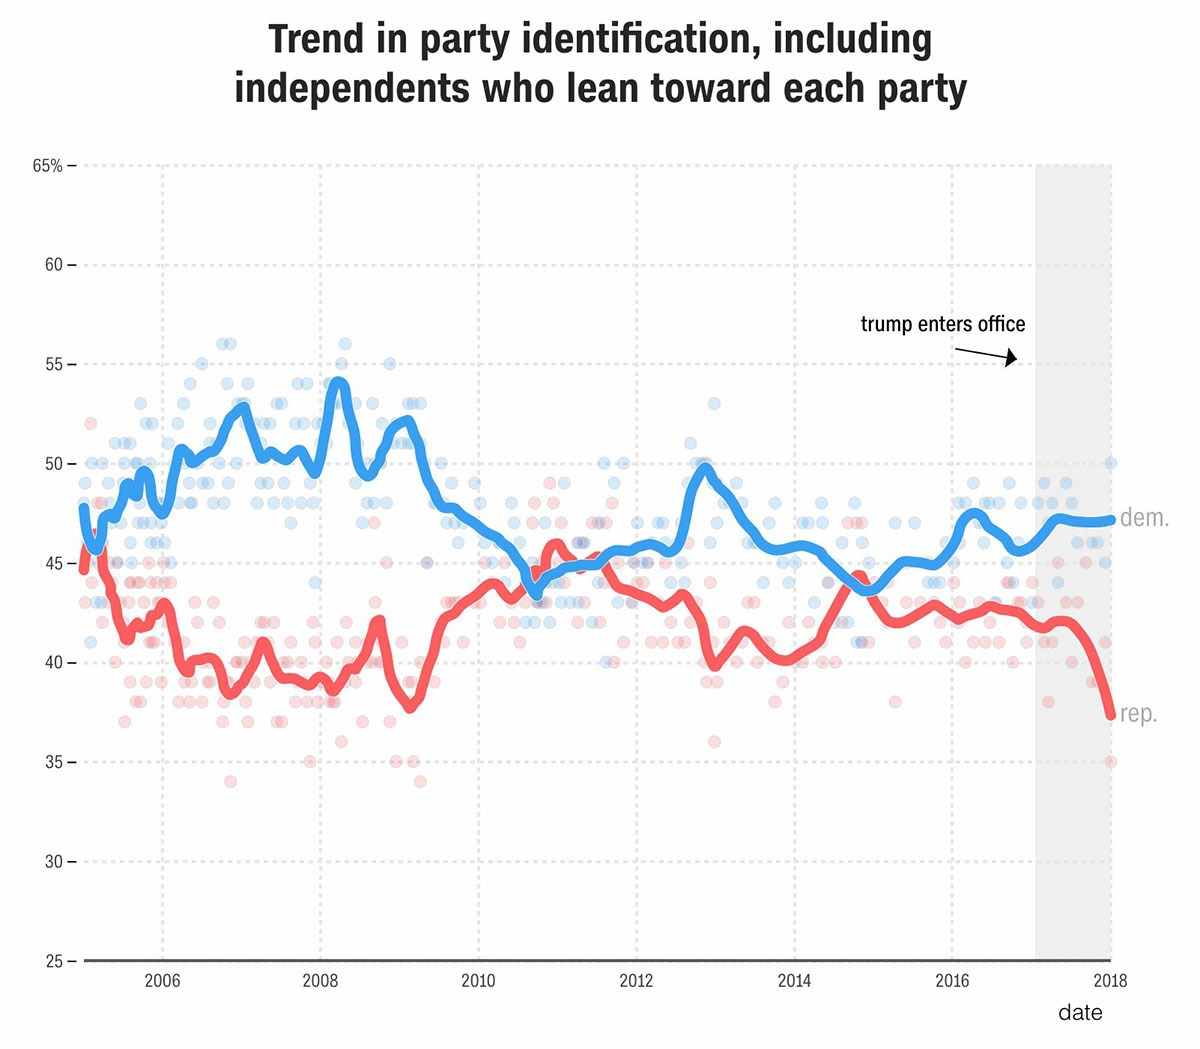 party affiliation trends 2018